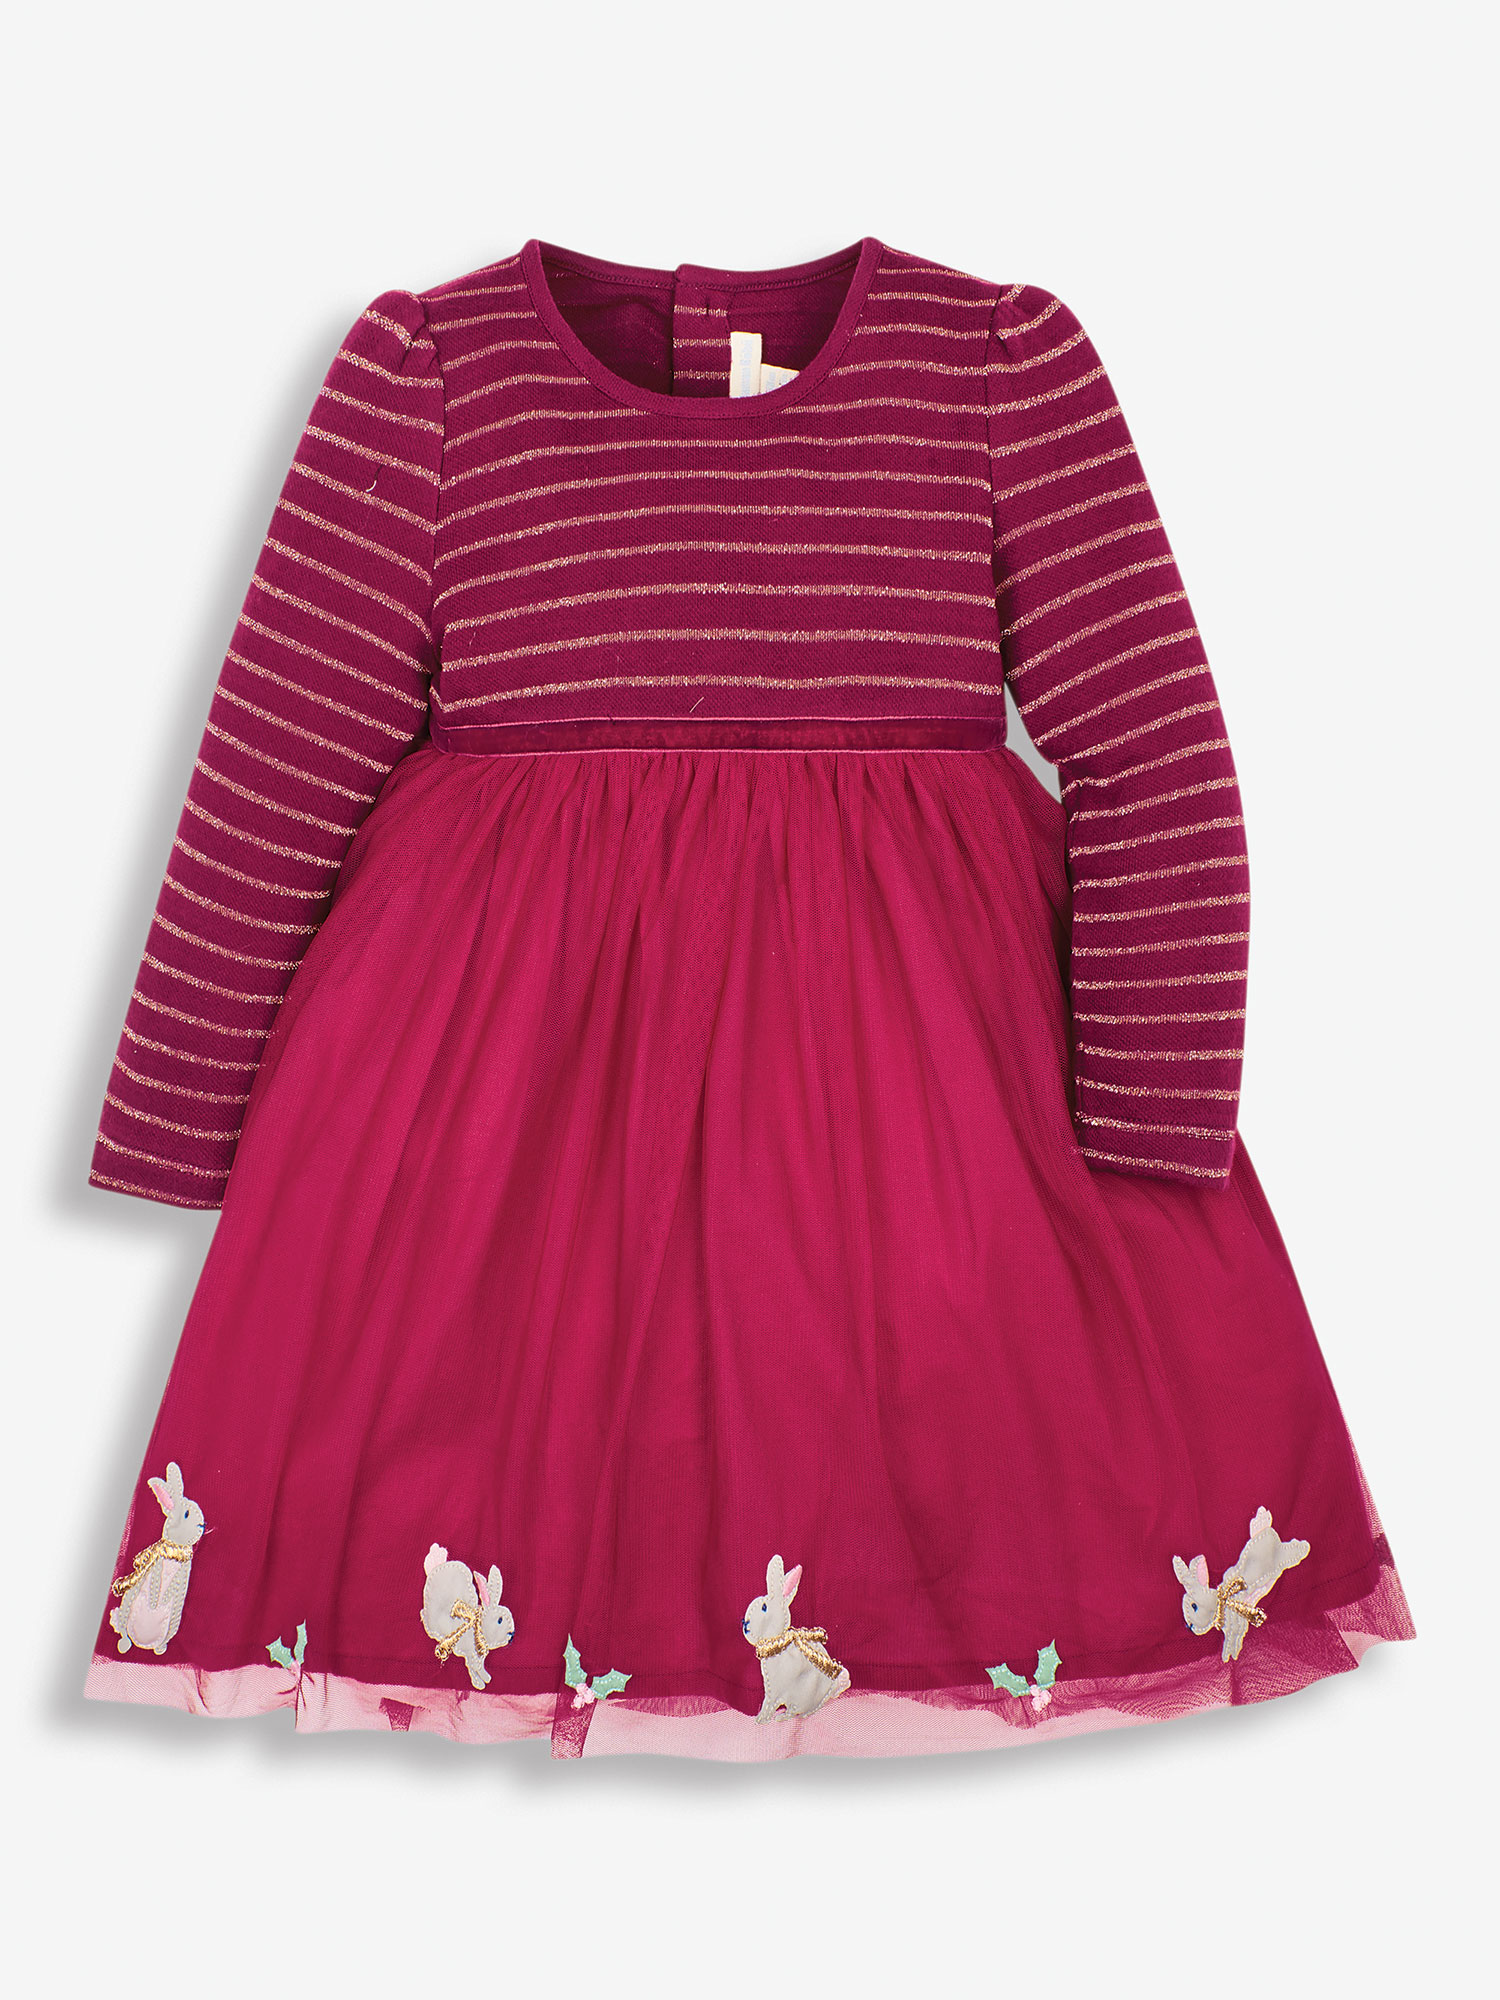 Girls' Berry Bunny Party Dress